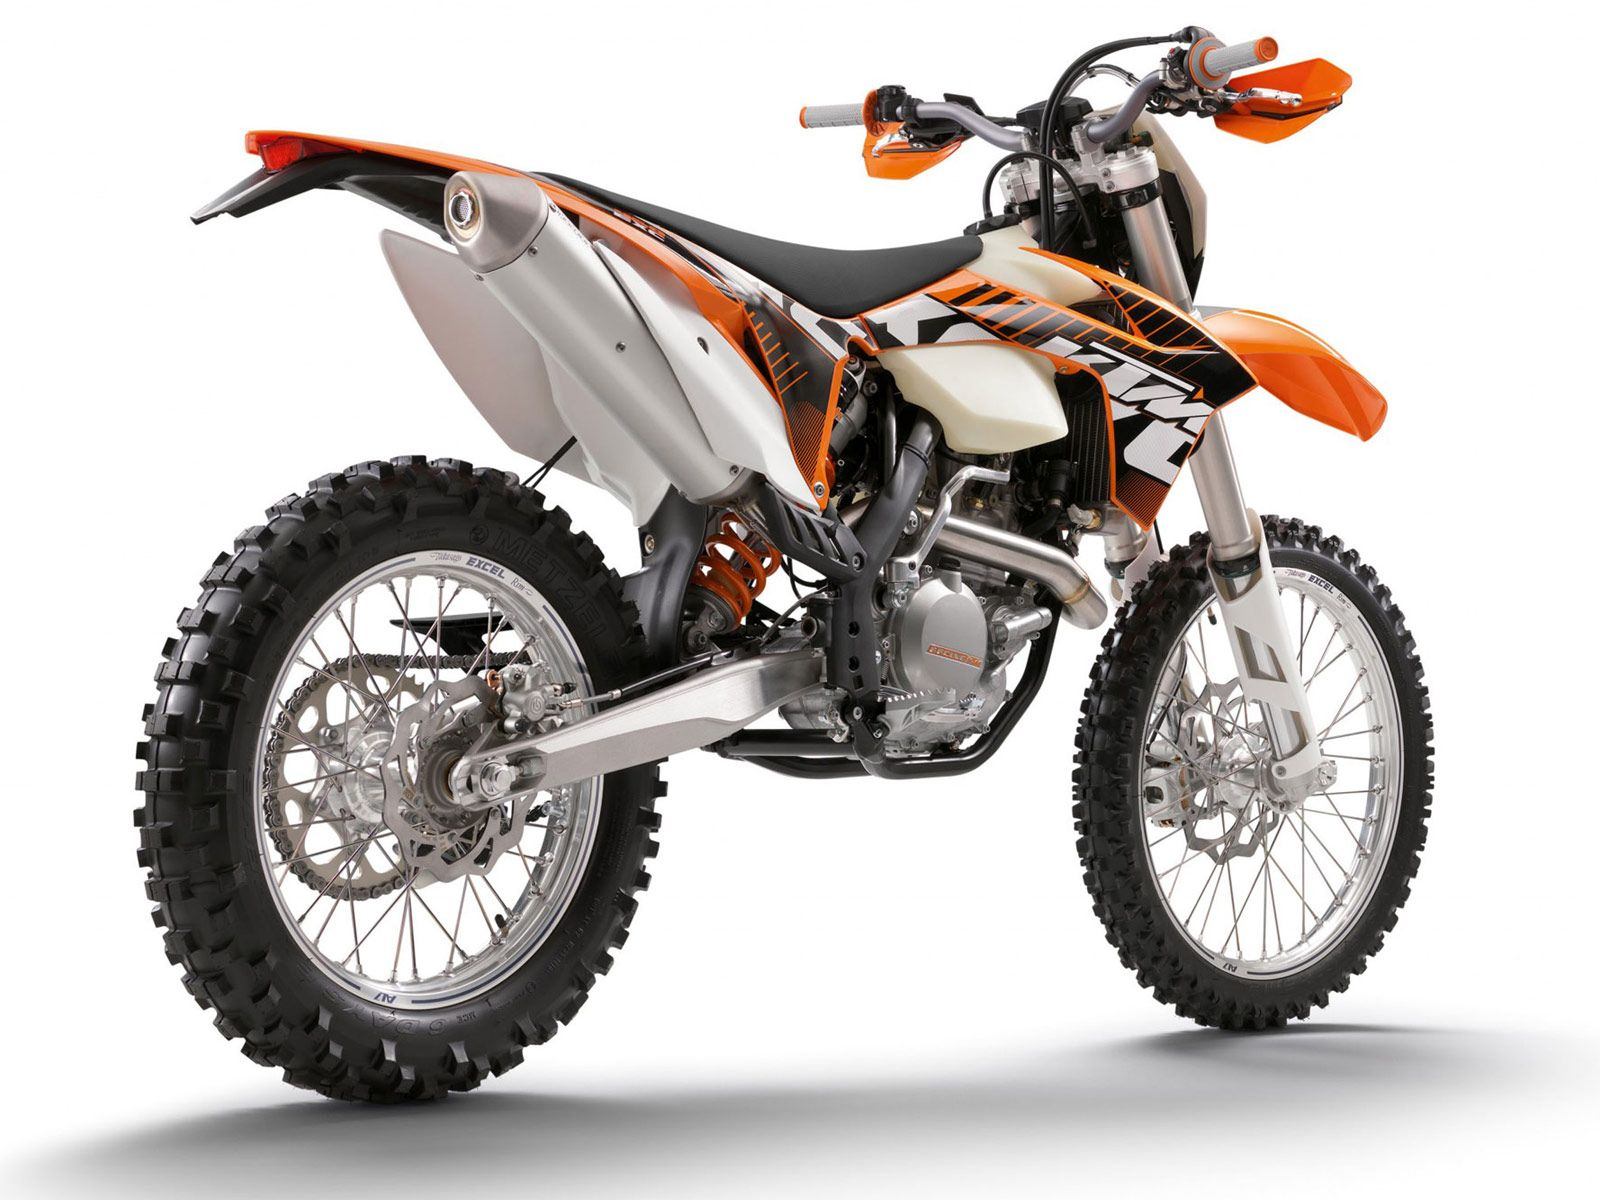 2012 ktm 450 exc dirt bike | motorcycles i love | pinterest | ktm